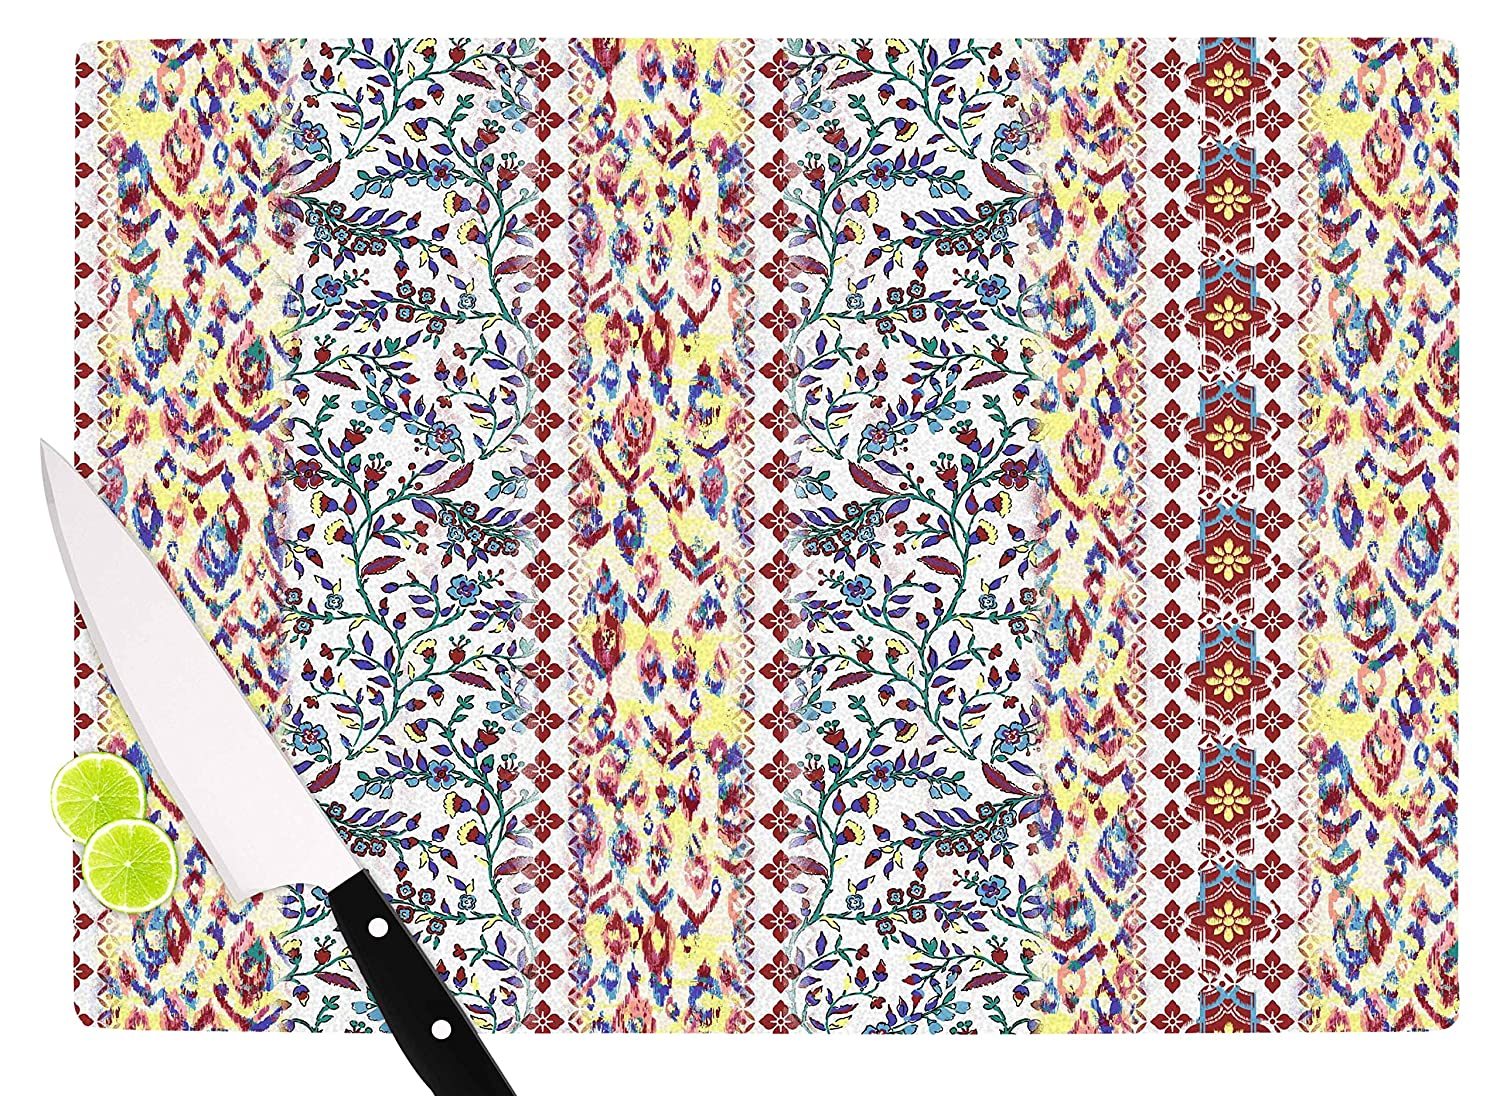 KESS InHouse VK1015ACB01 Victoria KruppArabesque Panel Multicolor Abstract Cutting Board Multi 11.5 x 8.25